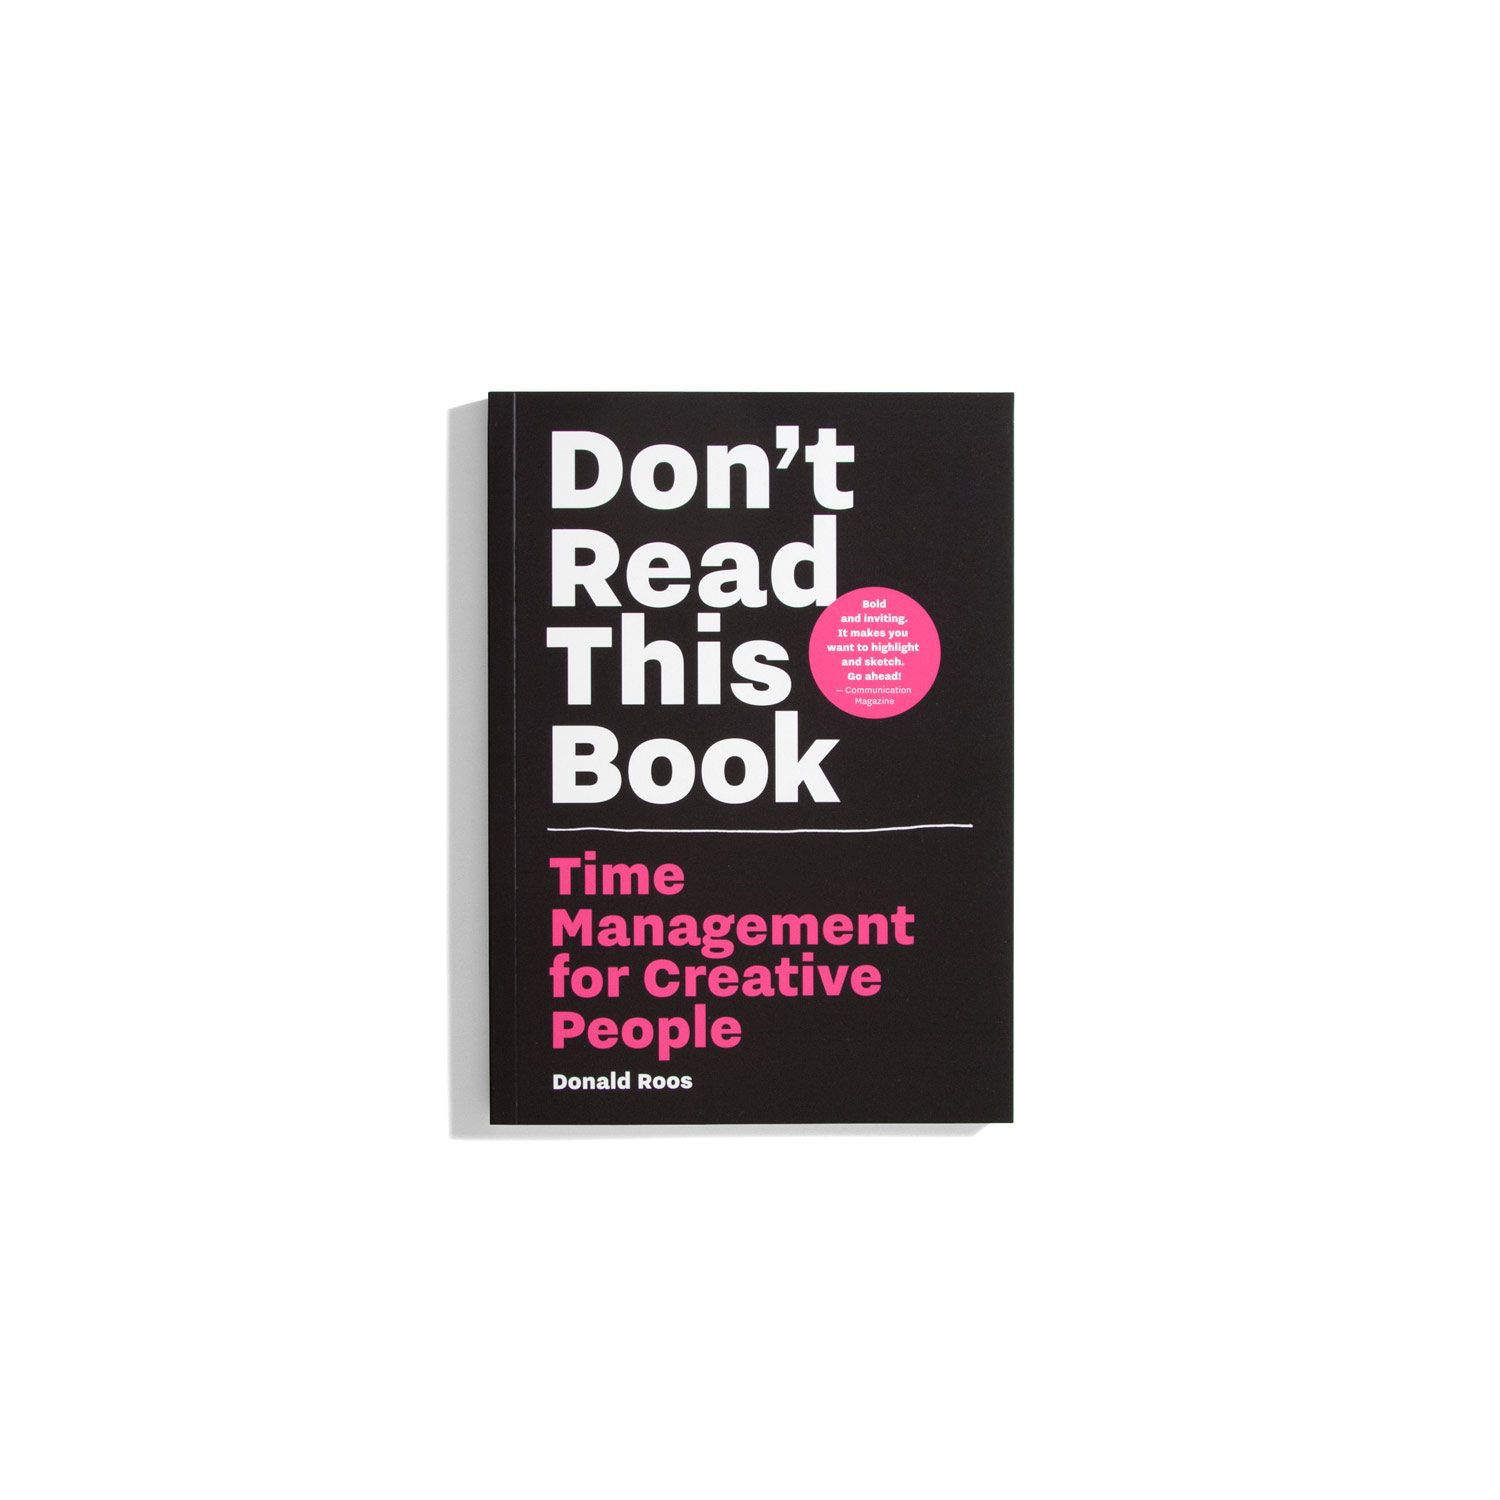 Don't read this Book - Donald Roos